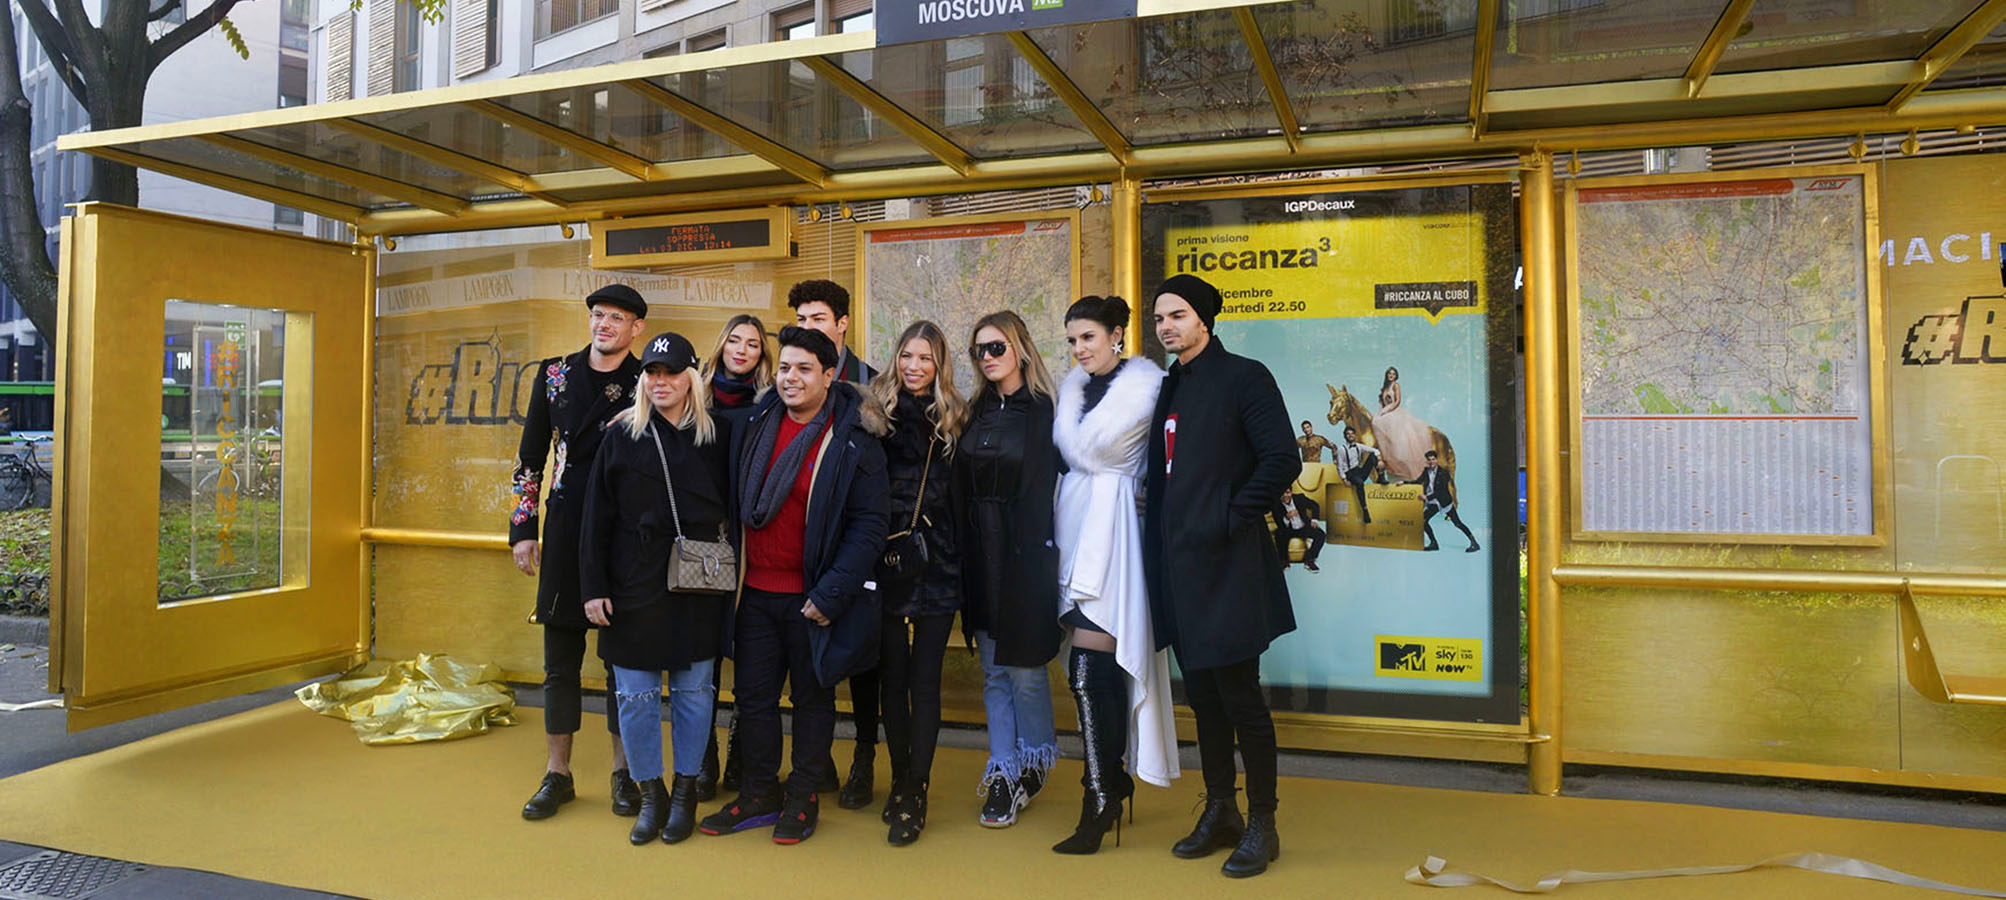 Brand Shelter in Milan for Riccanza